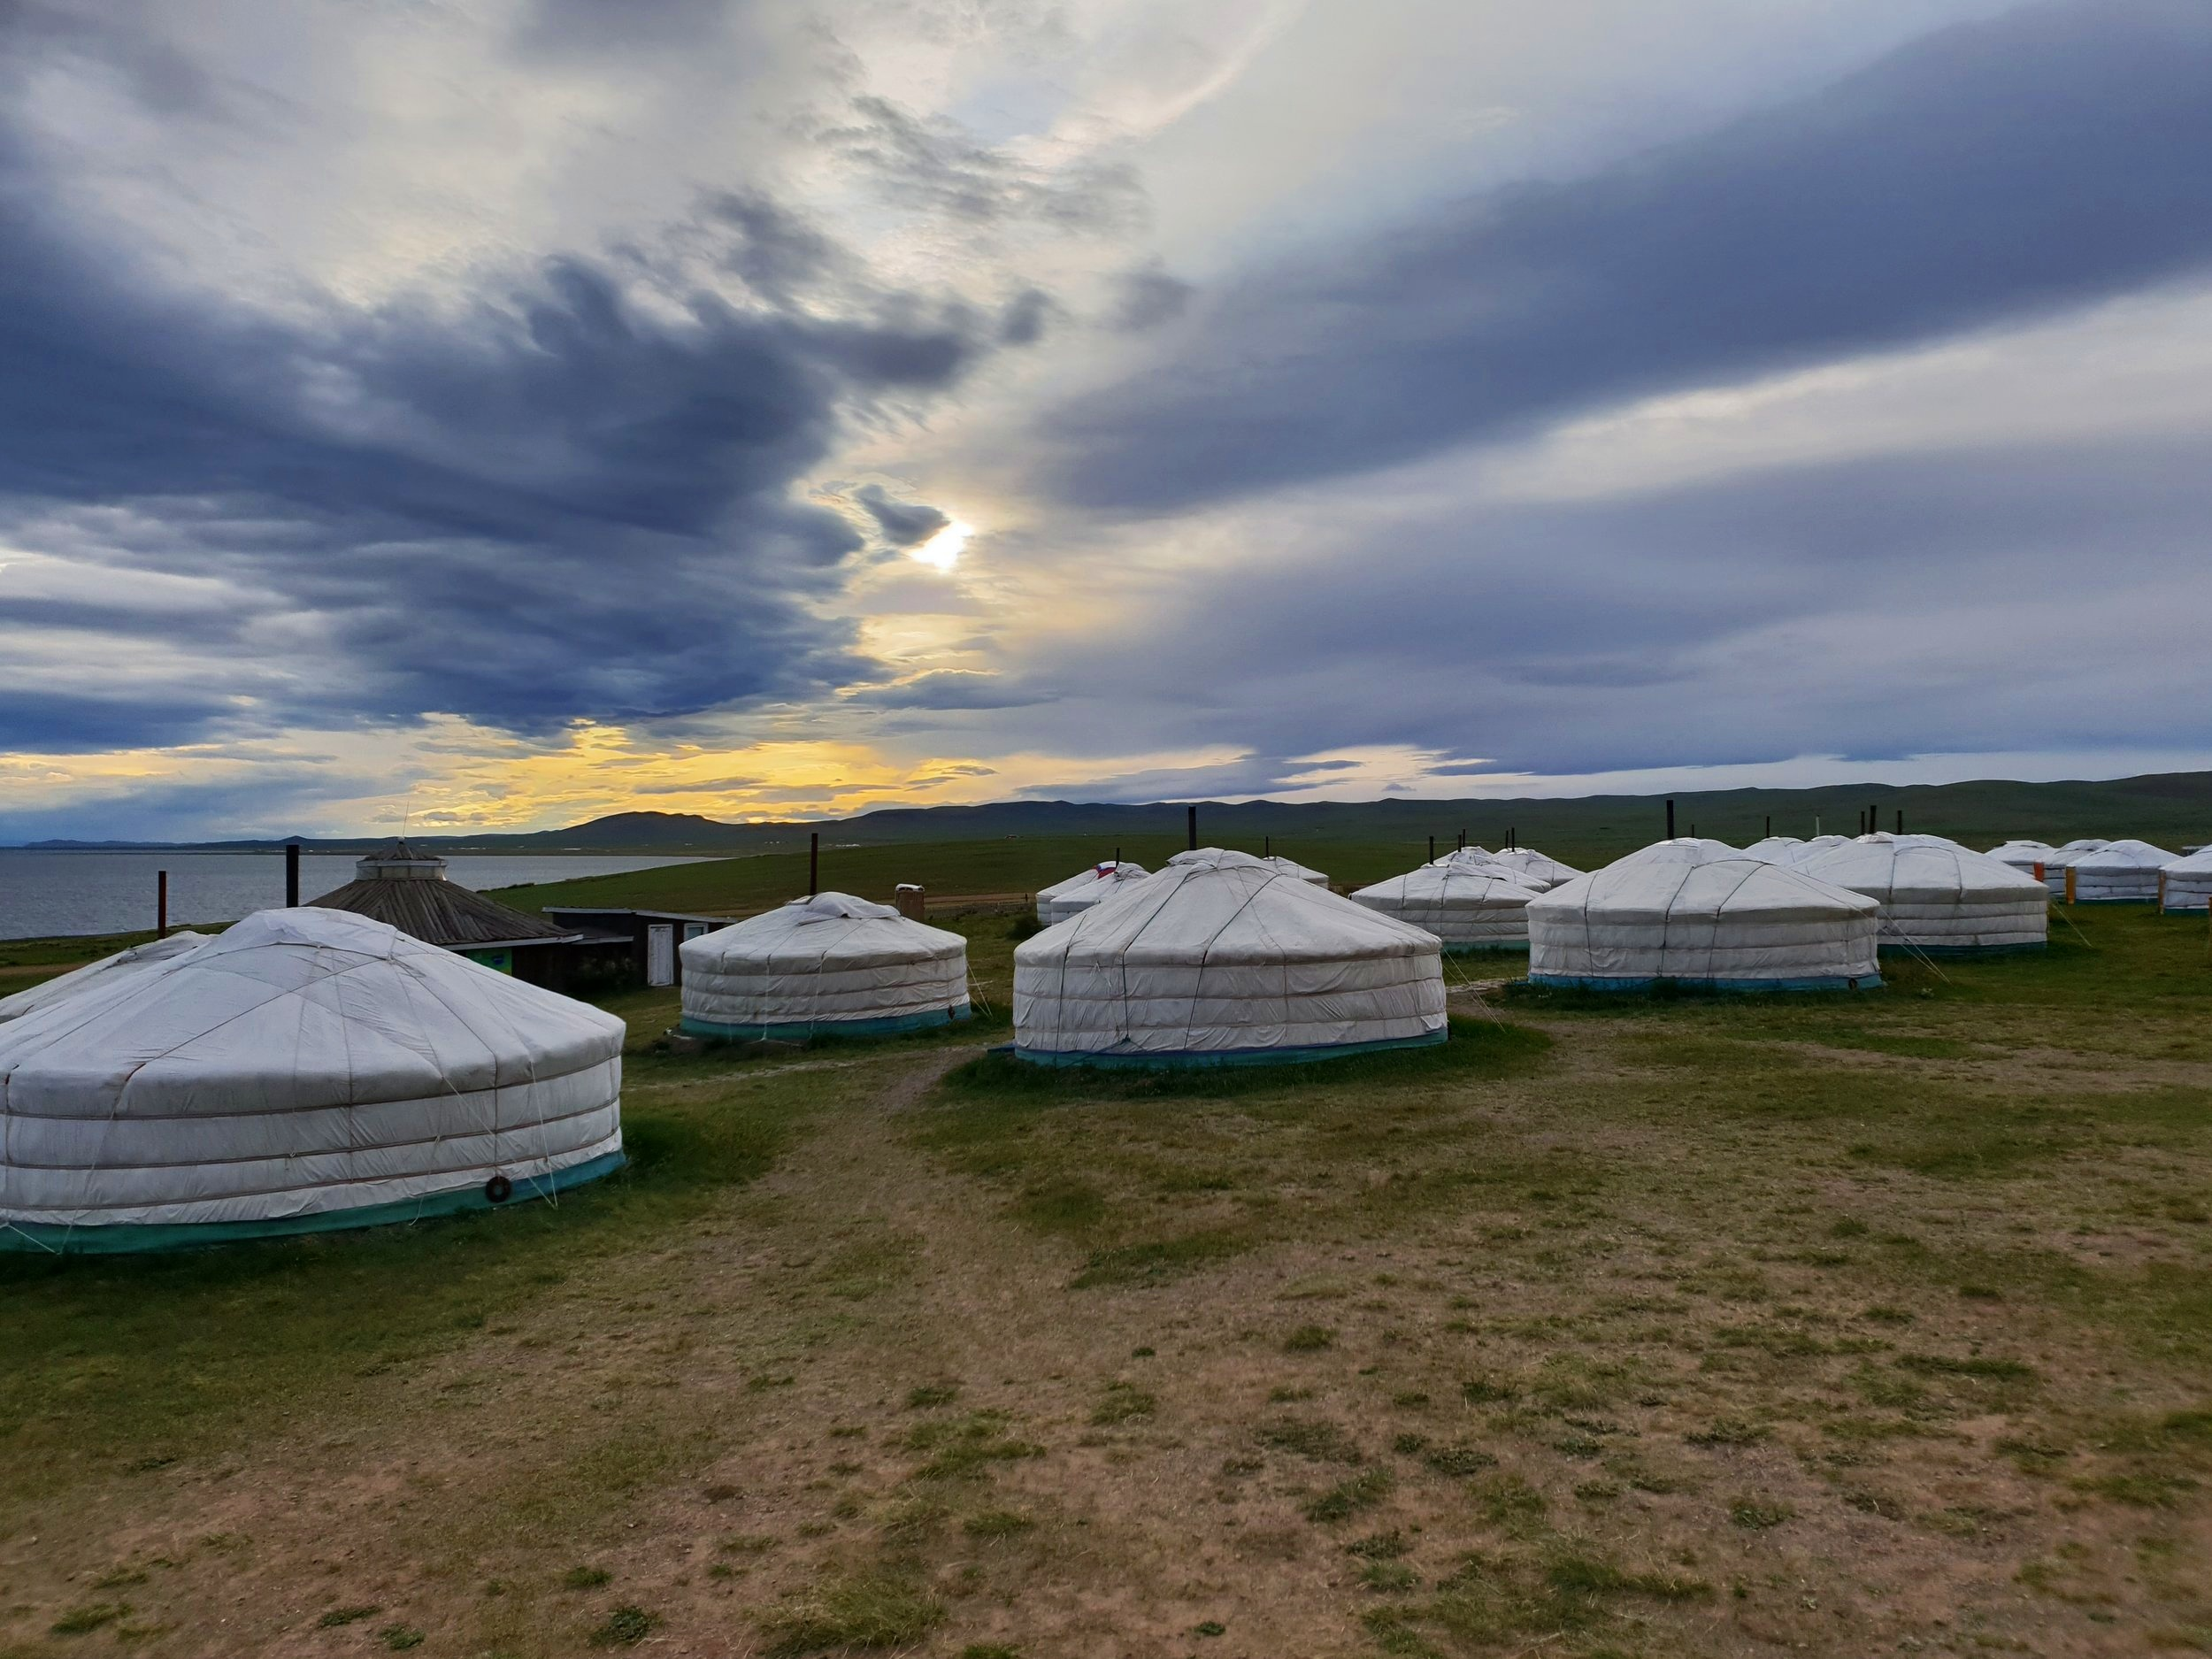 A Mongolian ger camp. Despite being generously proportioned, you will spend half the night boiling (when the stove is going) and the other half freezing (when it goes out).